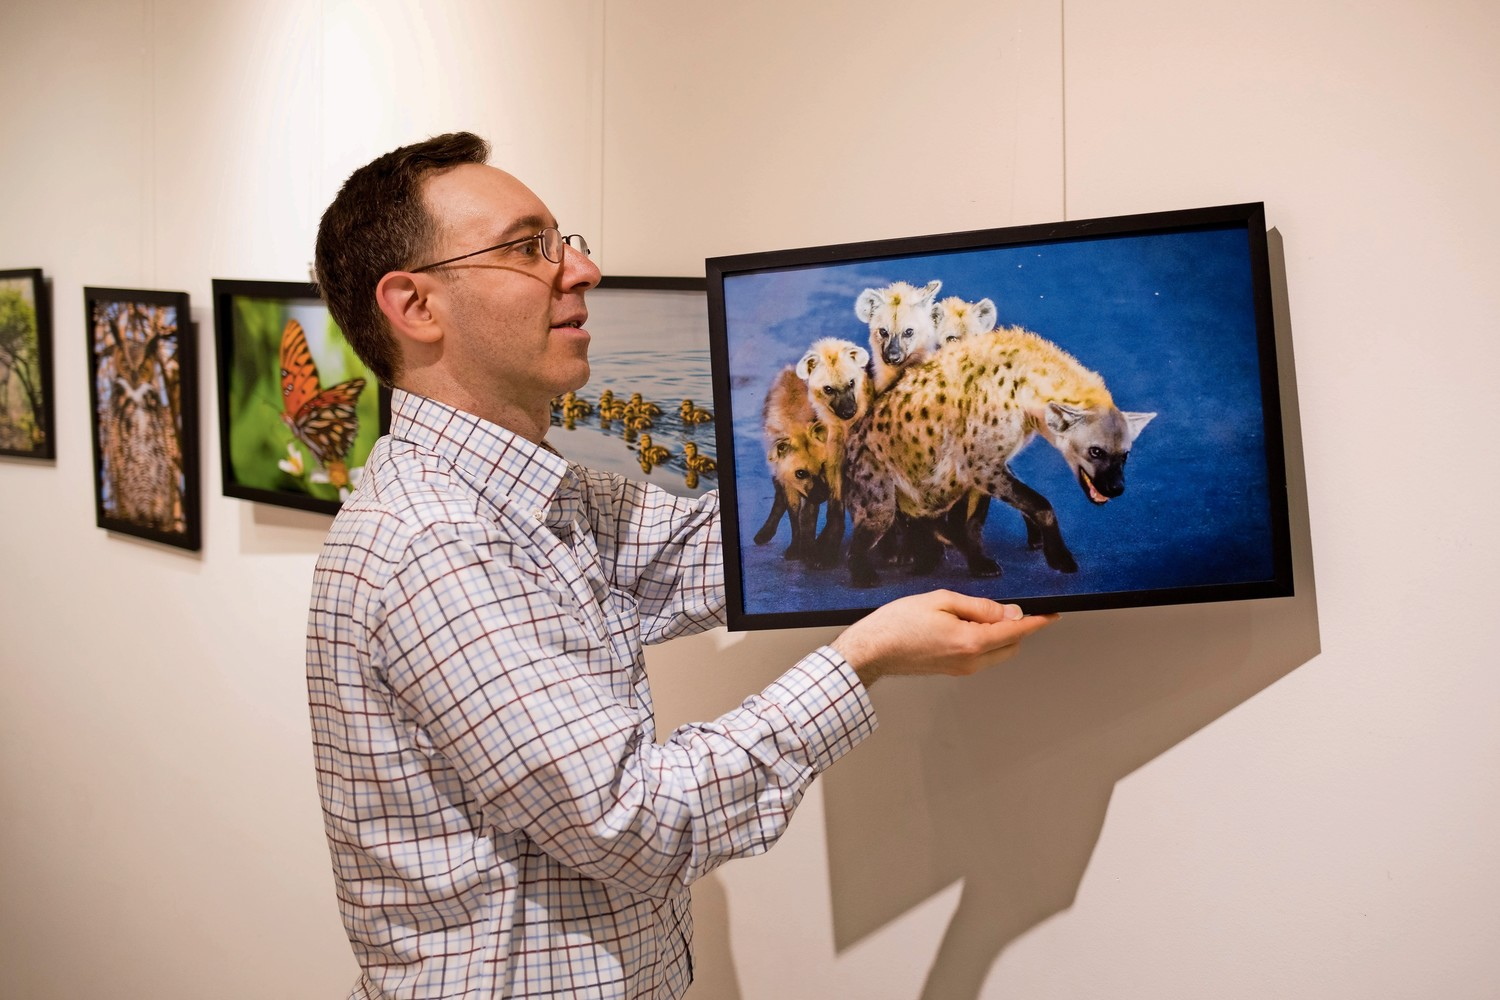 Mark Davis puts a photograph on the wall at Gallery 18 in the Riverdale Y for his exhibition 'Wildlife: Near and Far.' His photographs are a mix of animals from places as local as Van Cortlandt Park to as far flung as Kruger National Park in South Africa. It is on view until June 30.